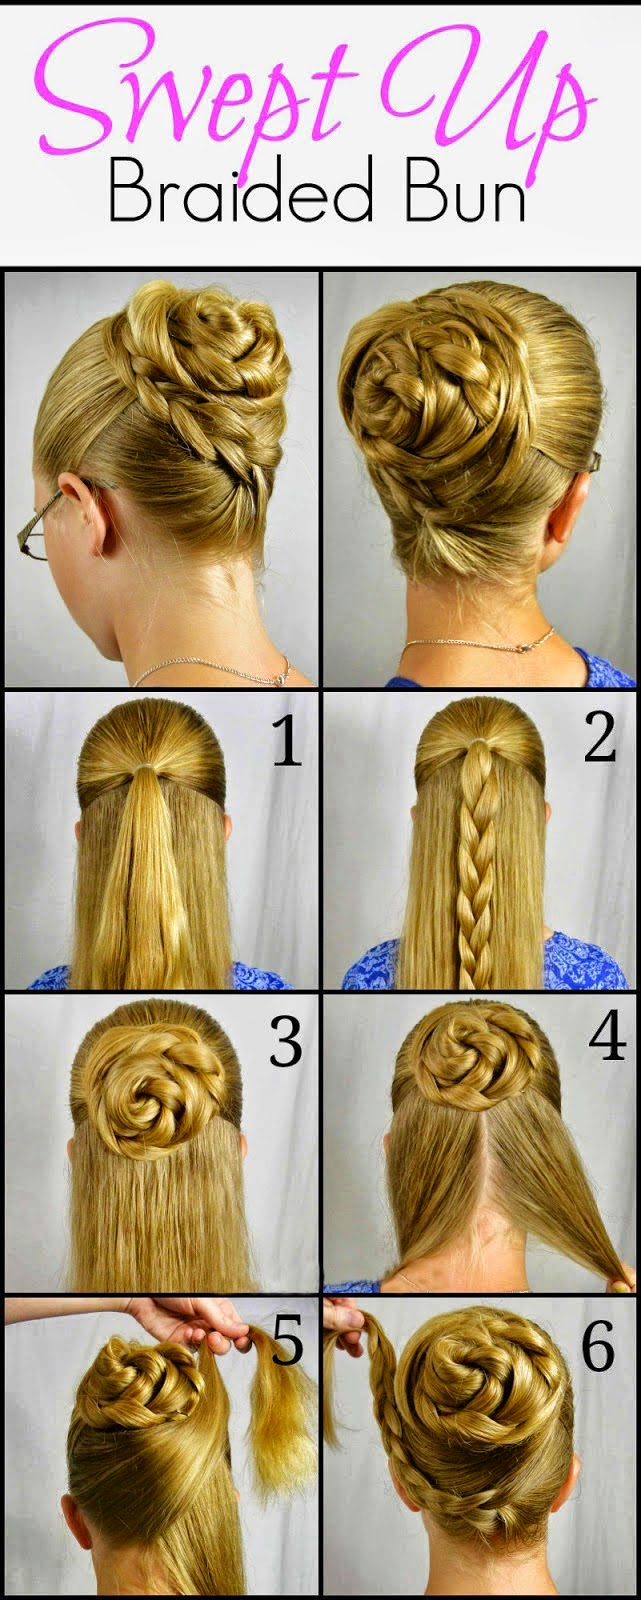 How to bun hairstyles step by step - Swept Up Rose Braid Bun Hairstyle Step By Step